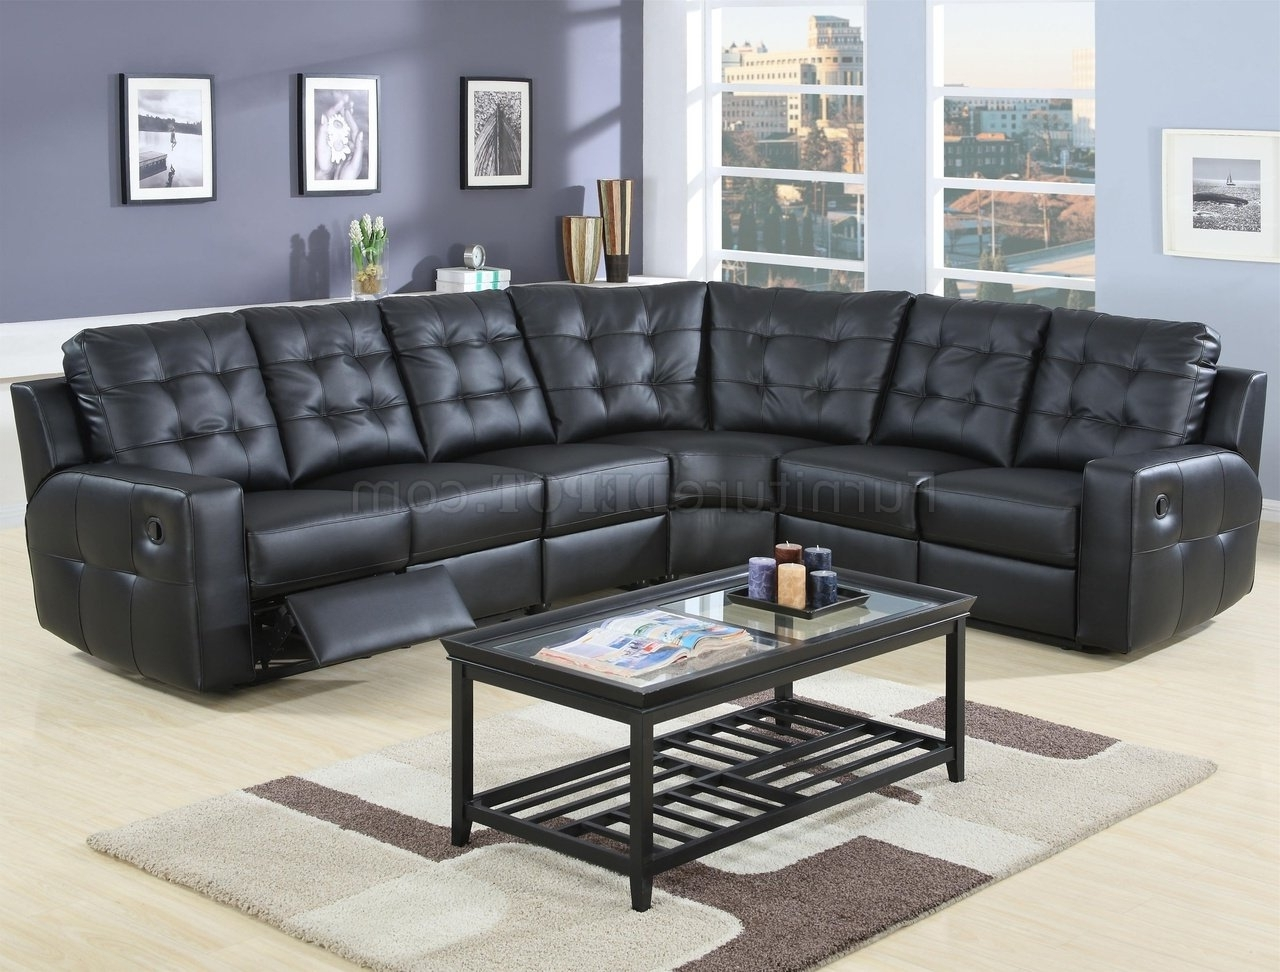 Most Current Used Sectional Sofas Within Modern Leather Double Reclining Sectional Sofa 600315 Black (View 14 of 15)